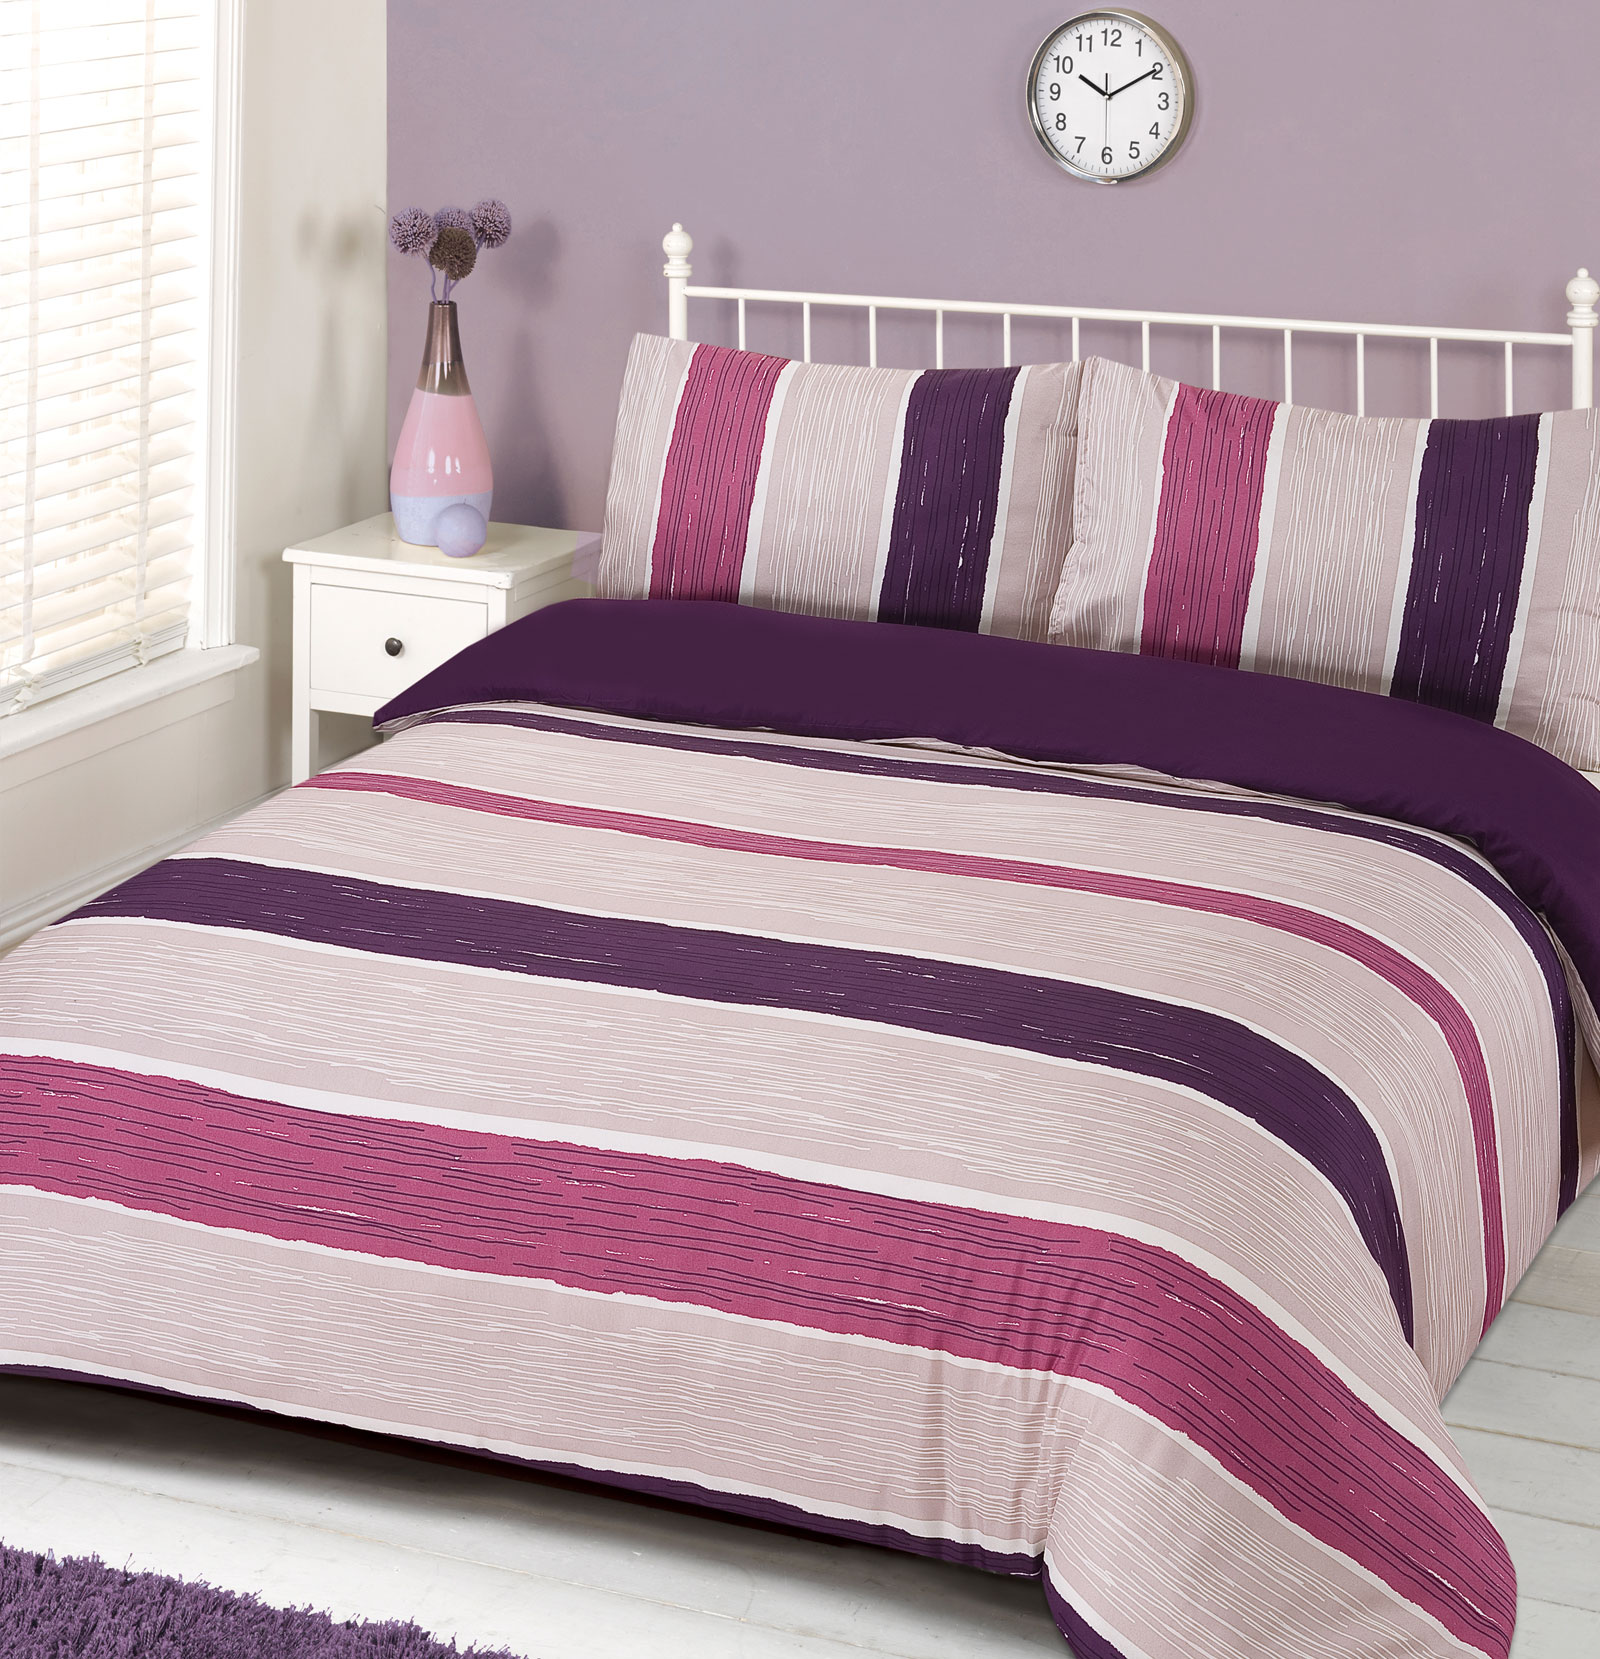 Shop for Purple Bedding & Duvet Covers from our Home & Garden range at John Lewis. Free Delivery on orders over £ Skip to main content. Header links. About us Purple Bedding & Duvet Covers (6) Your path to this page. Select a link to go back to a previous page. Homepage; Home & Garden Pink.